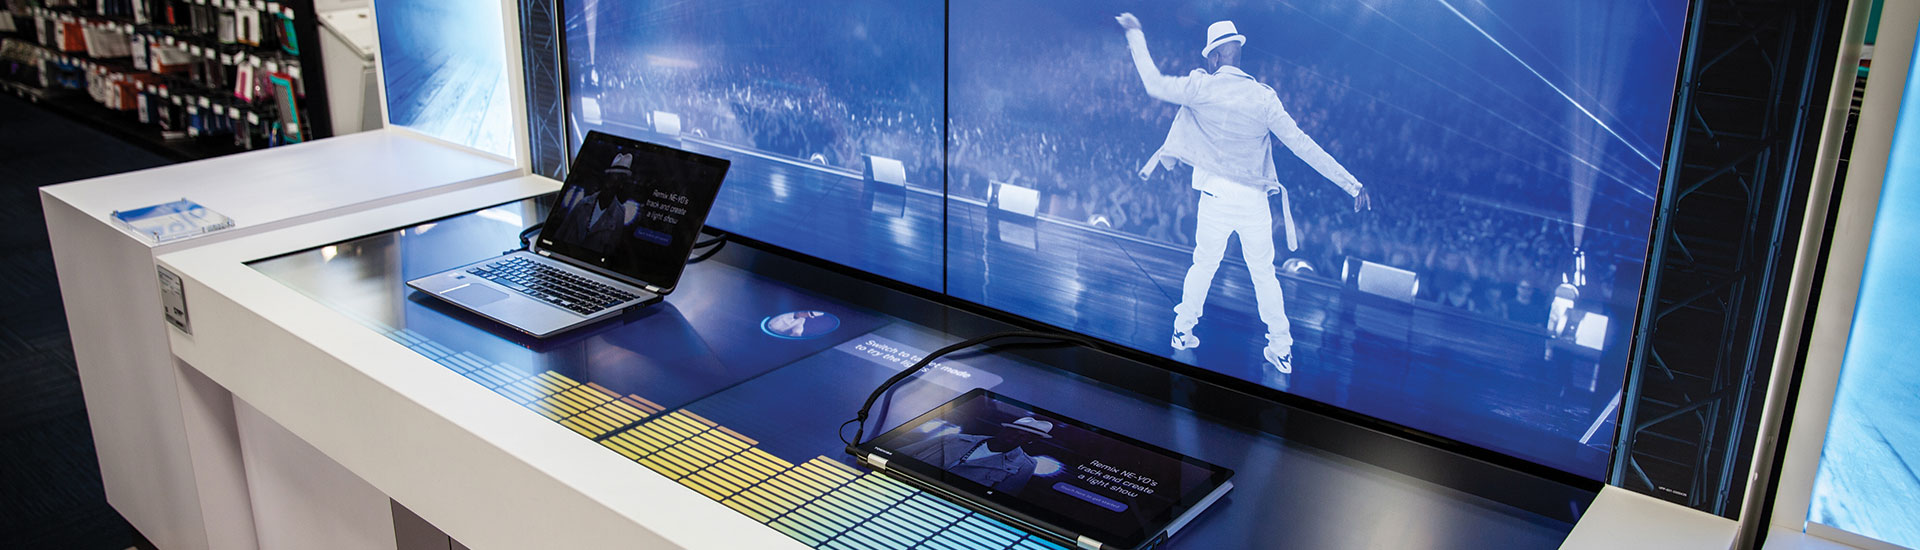 Interactive Touch Tables For Intel At Best Buy By Horizon Display